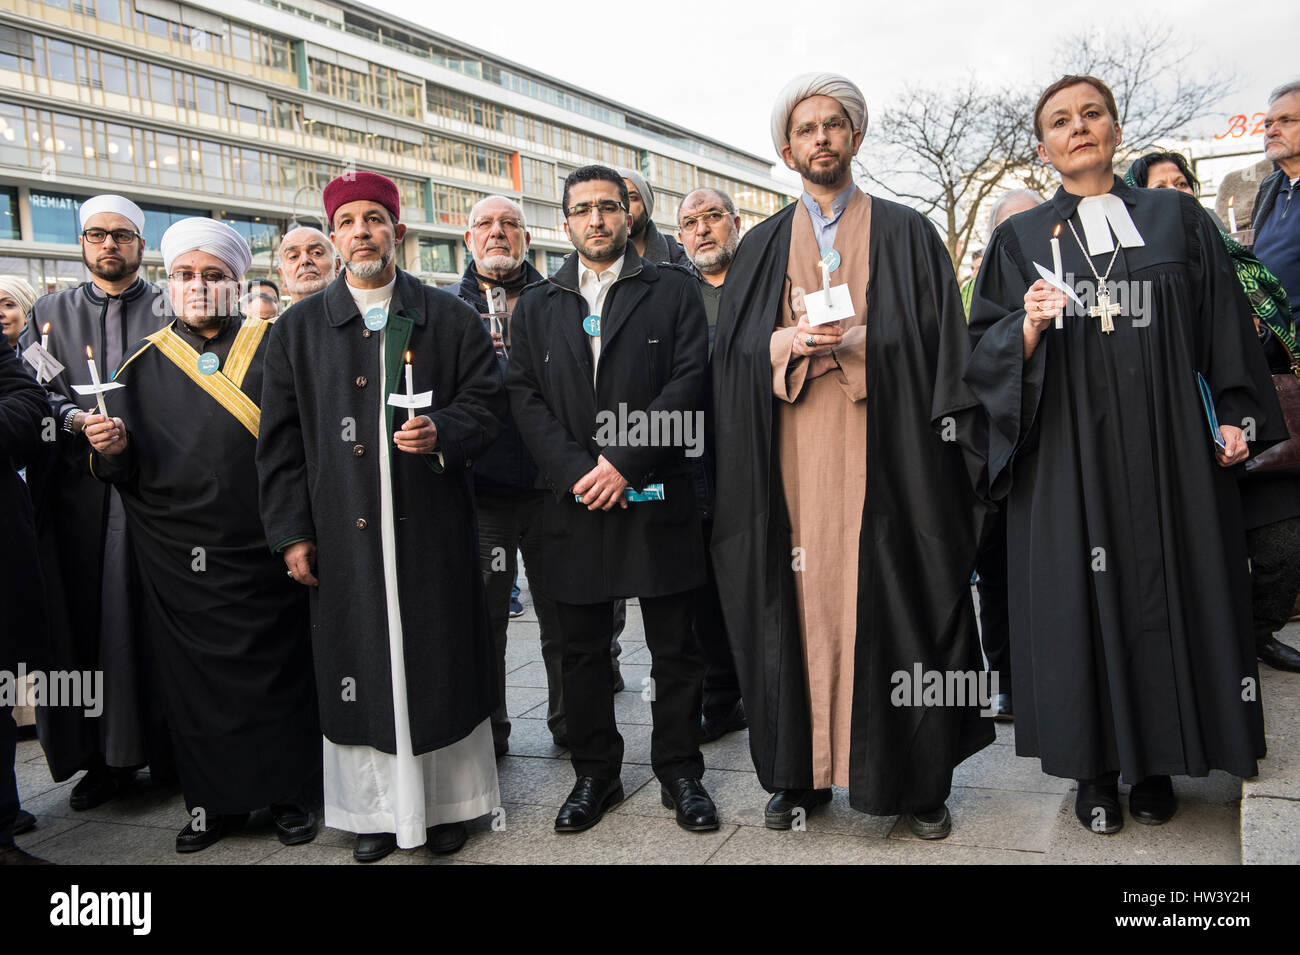 Berlin, Germany. 16th Mar, 2017. Representatives from various religions standing at the memorial for the terror - Stock Image